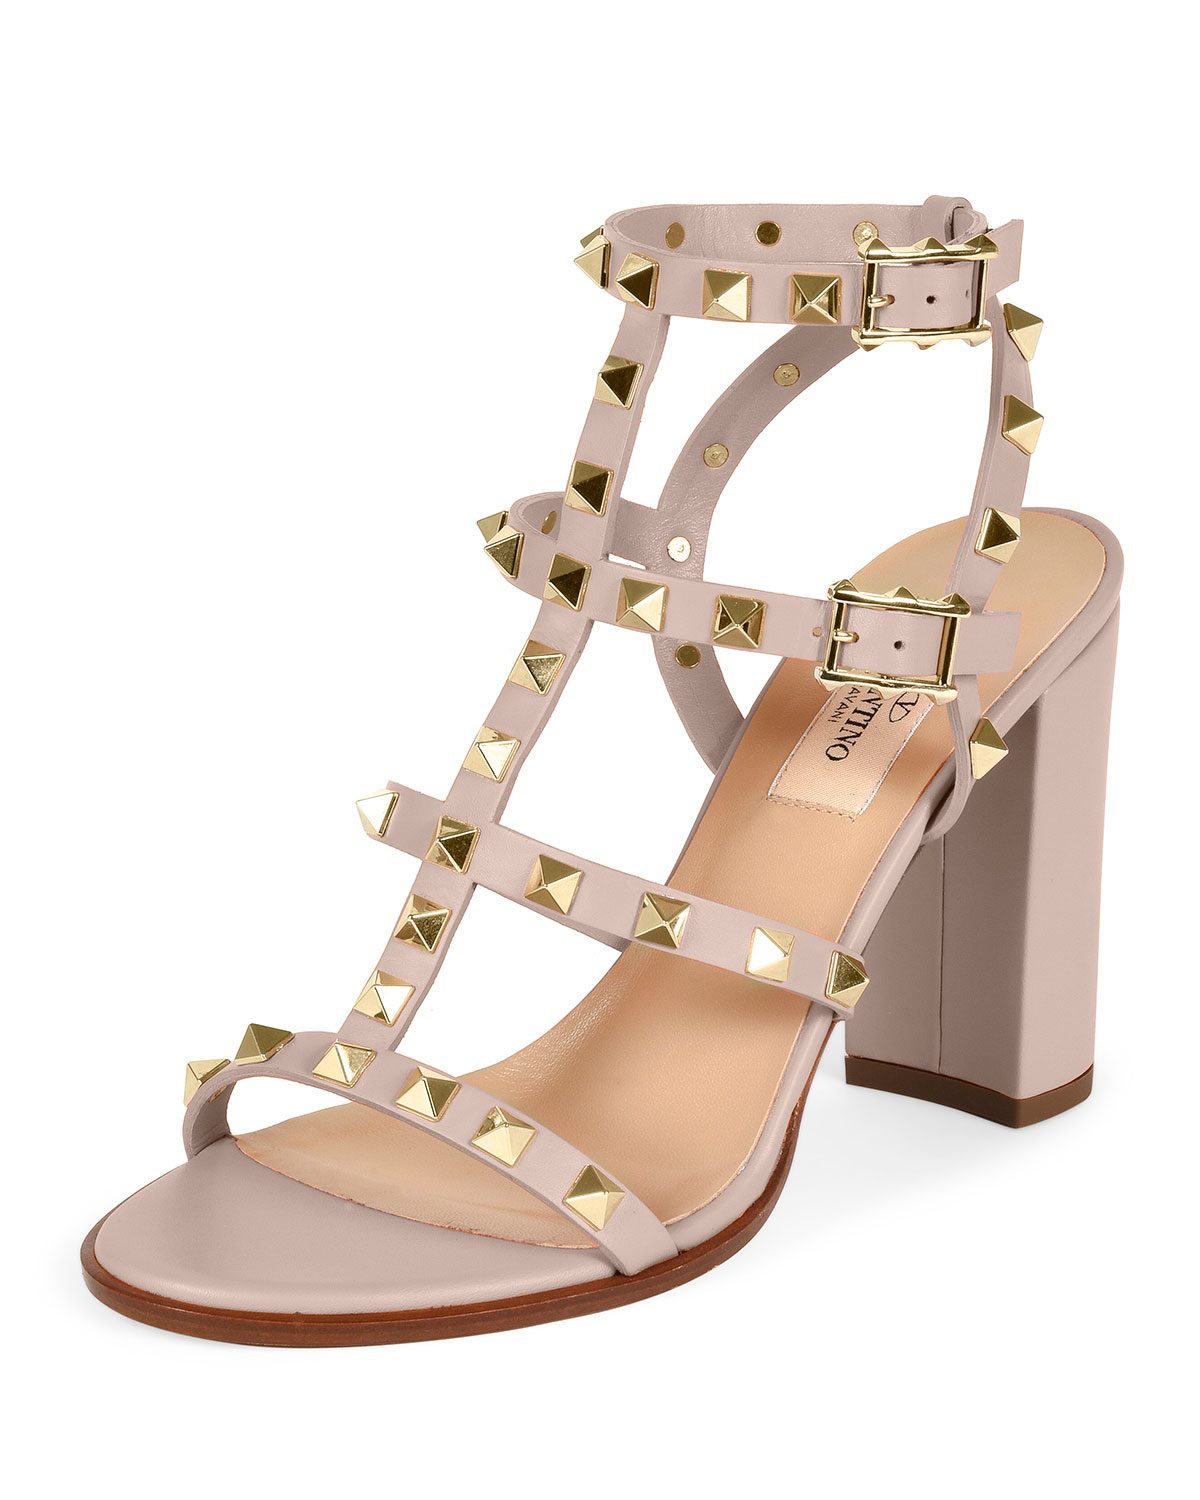 3769629a309 Lyst - Valentino Rockstud Leather Sandals in Pink